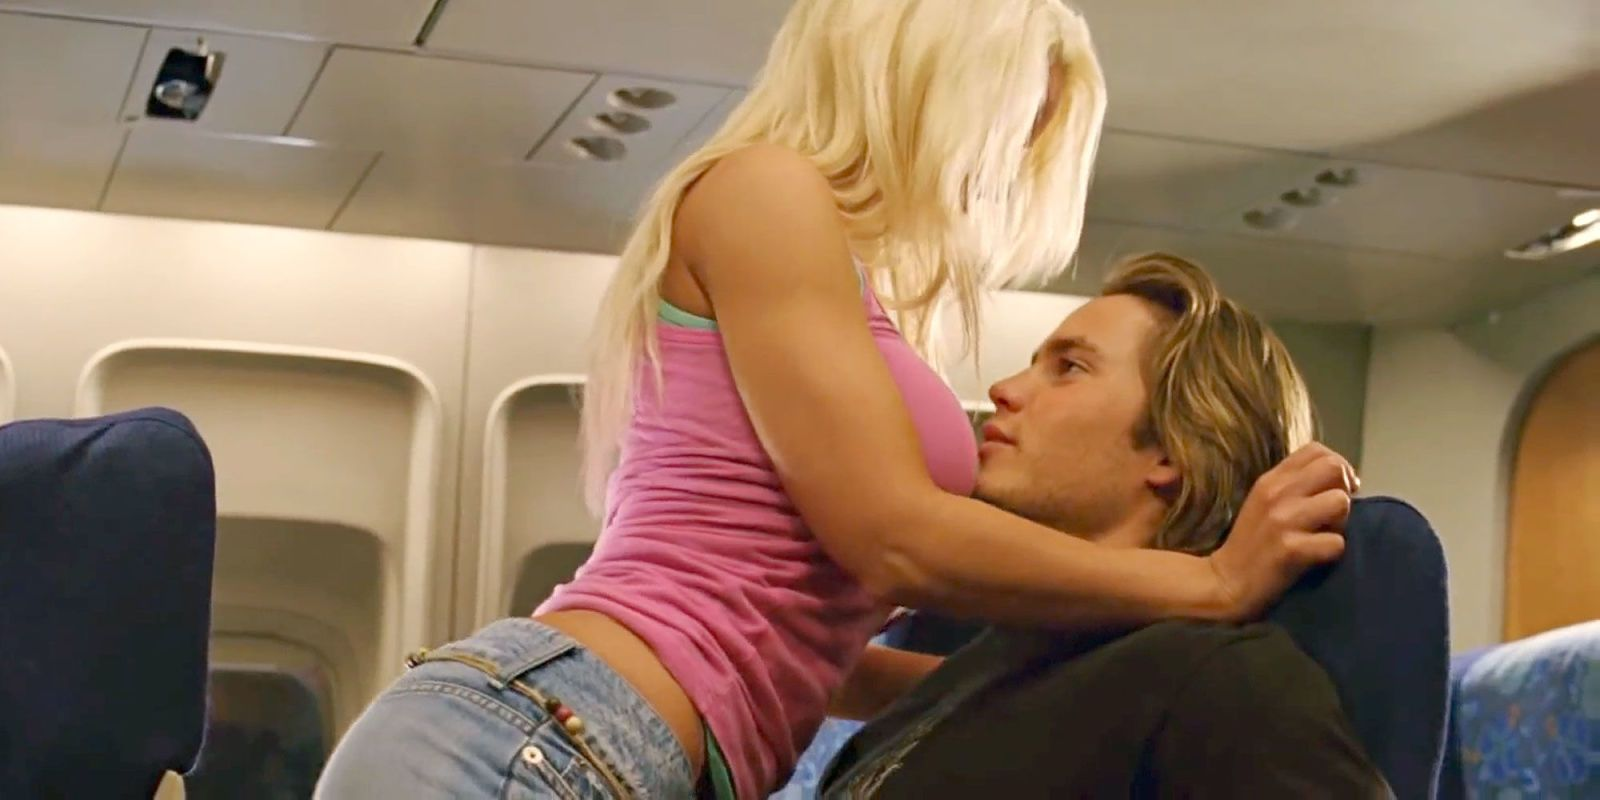 airplane bathroom sex video